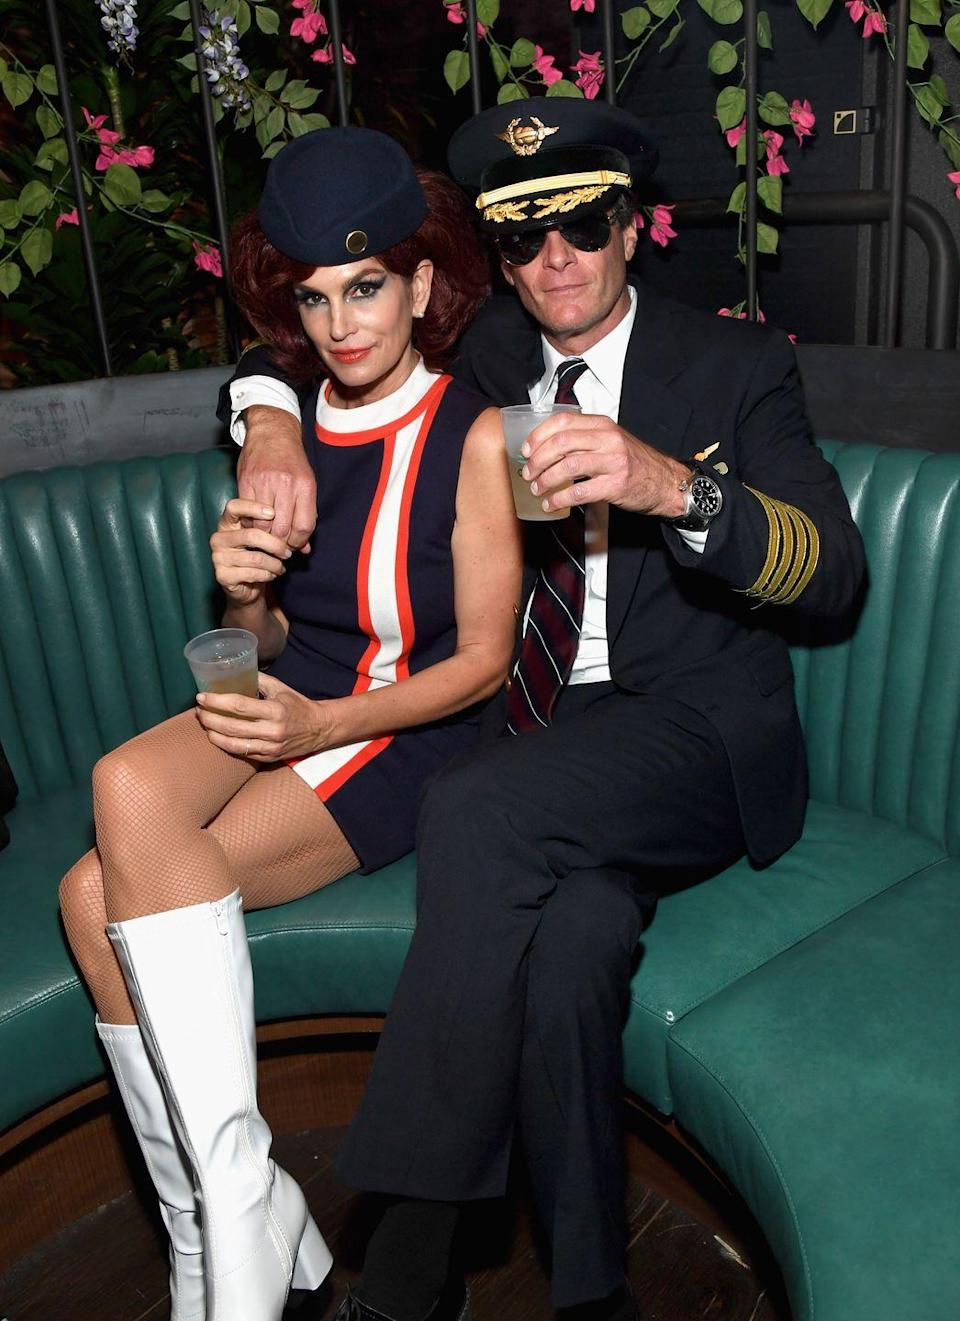 <p>Holy Pan Am! Cindy Crawford and Rande Gerber's 2018 Halloween costume as a '60s stewardess and pilot, respectively, could fly us to the moon. </p>